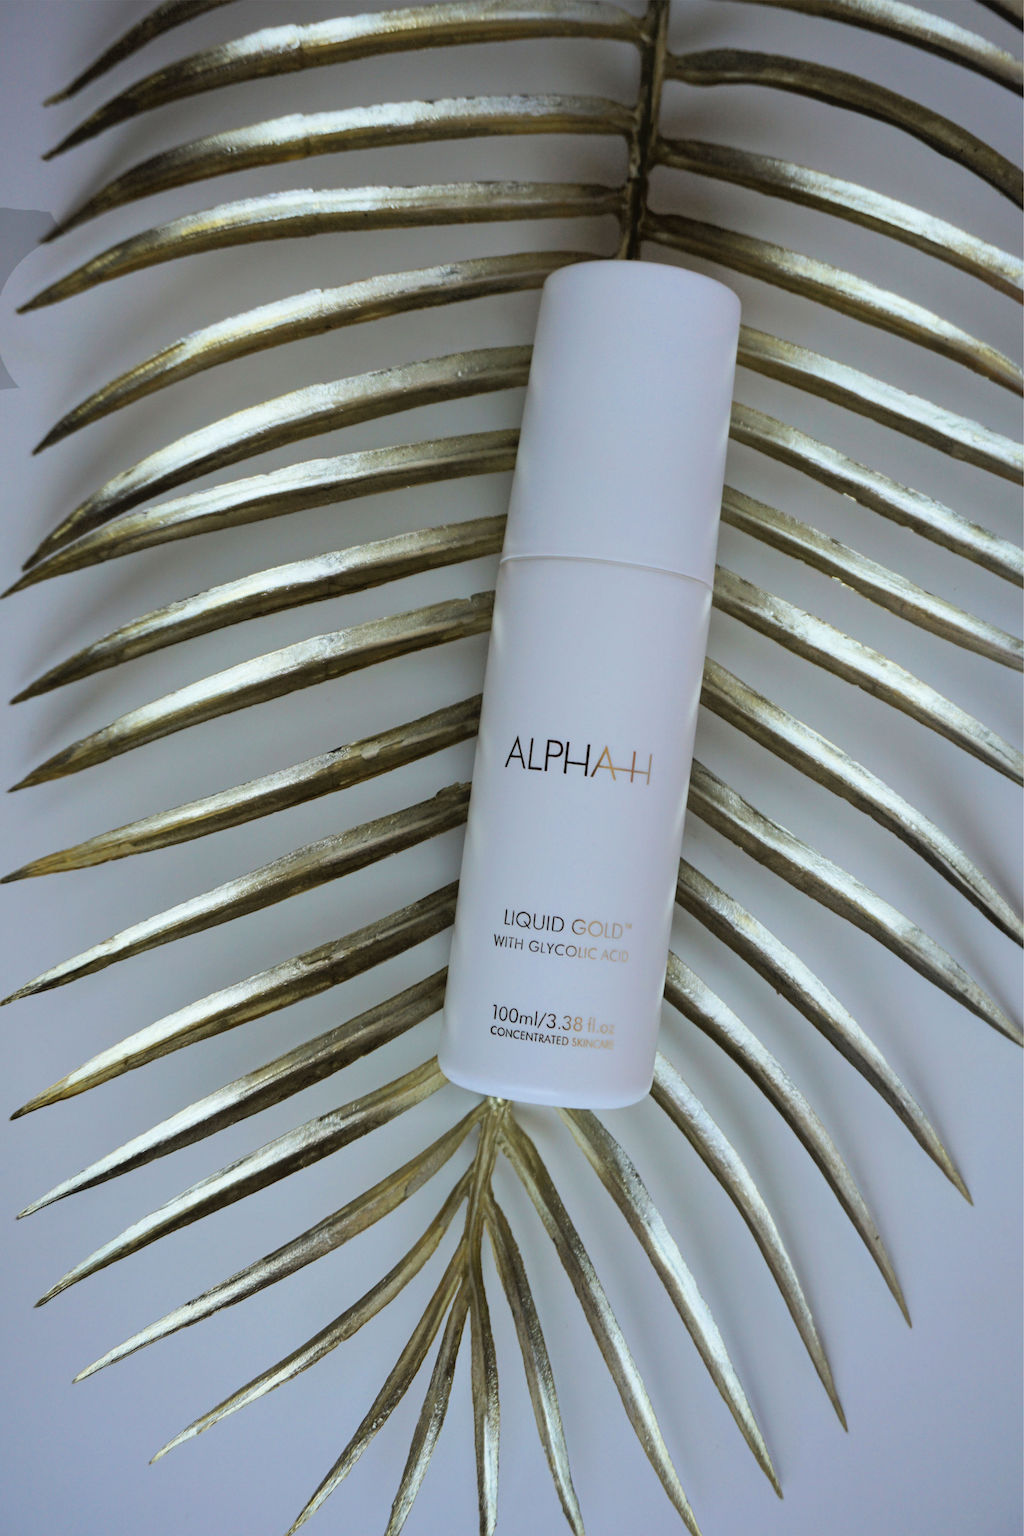 ALPHA-H Liquid Gold 4-in-1 Product: Lotion, Exfoliant, Serum én Moisturizer